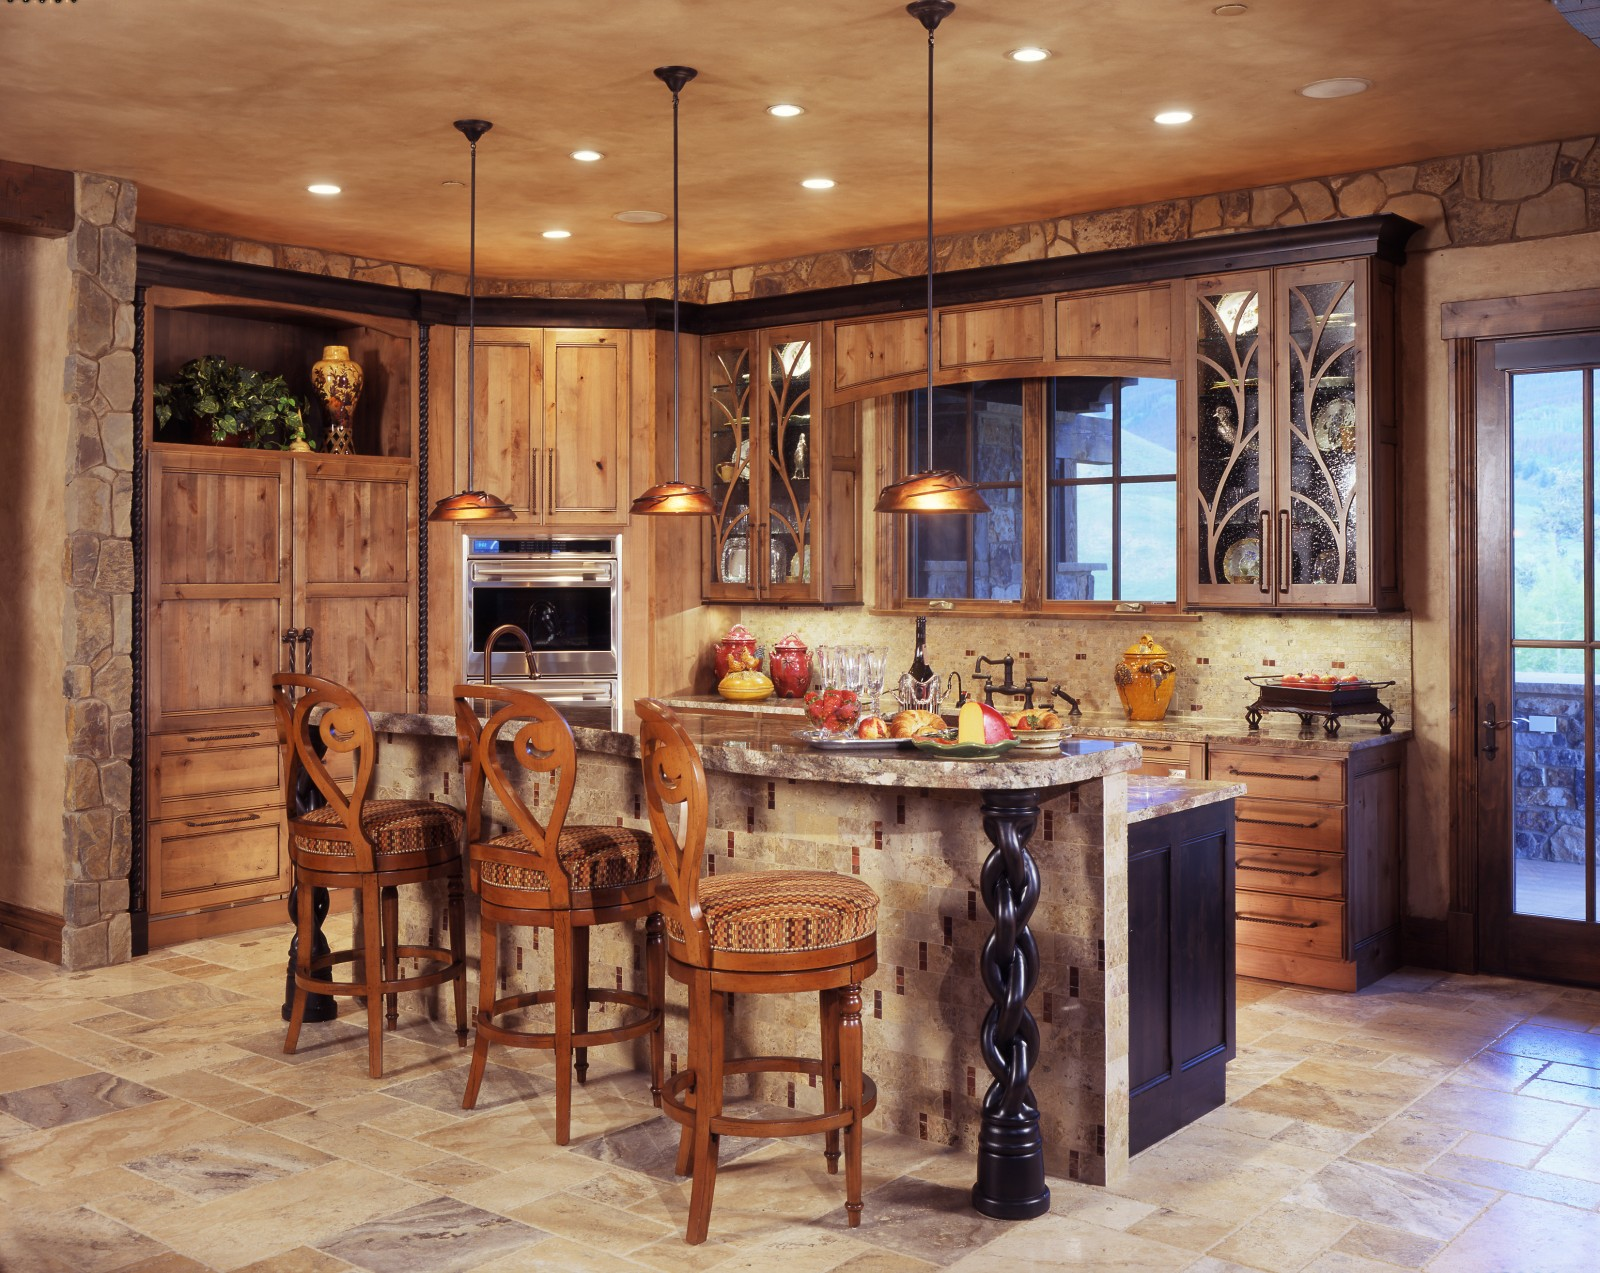 Rustic kitchen decor 6271 Rustic kitchen designs